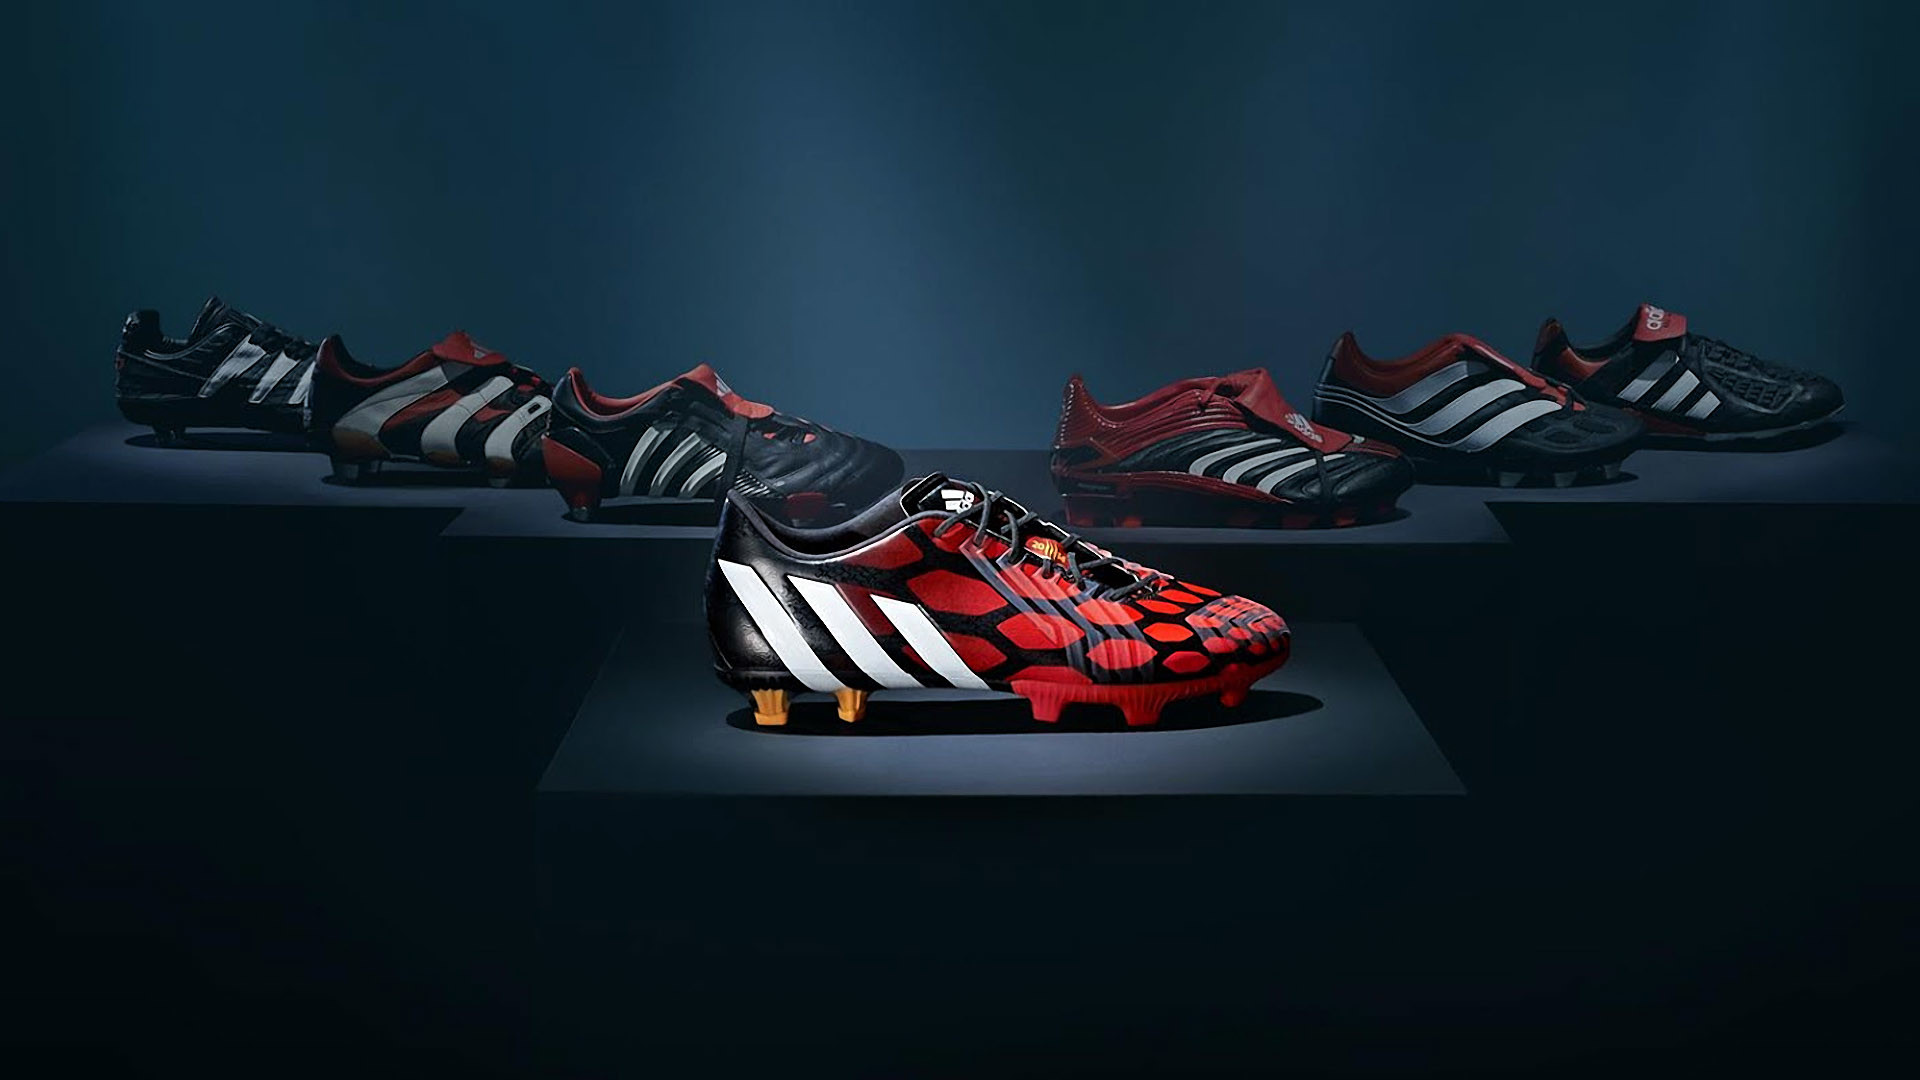 Res: 1920x1080, Adidas Football Wallpaper Images To Download Wallpaper